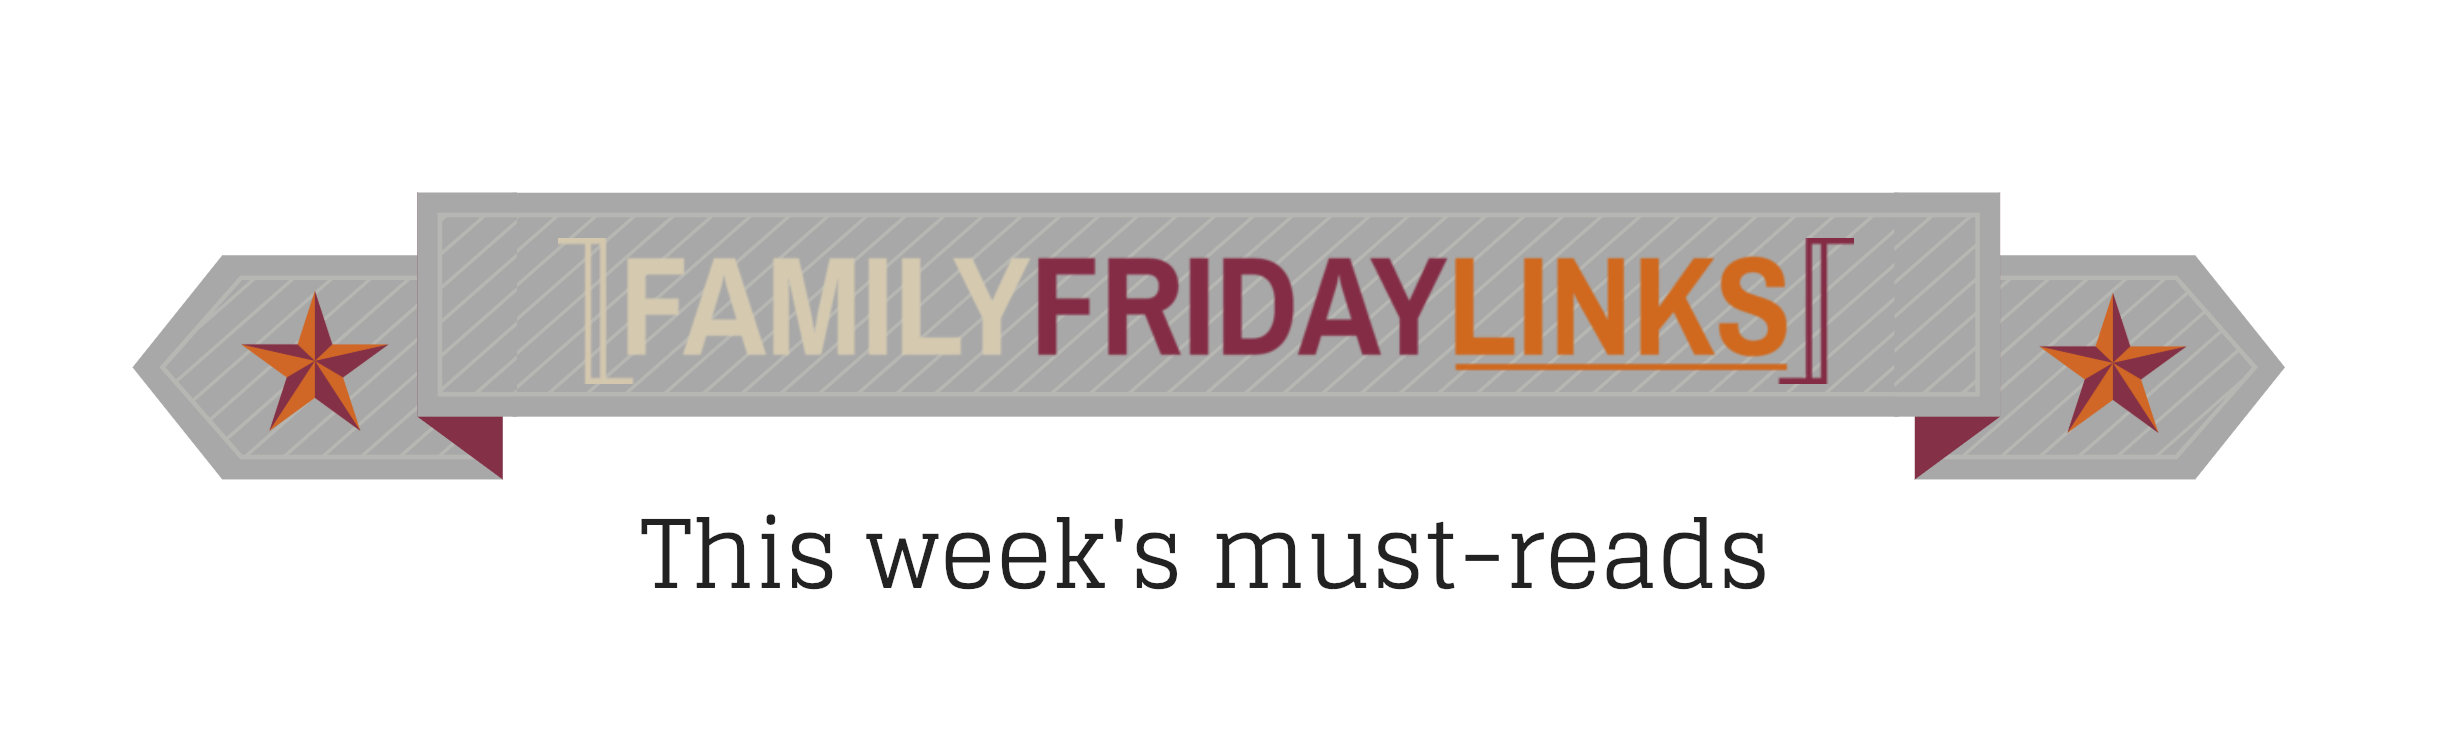 Family Friday Links.png